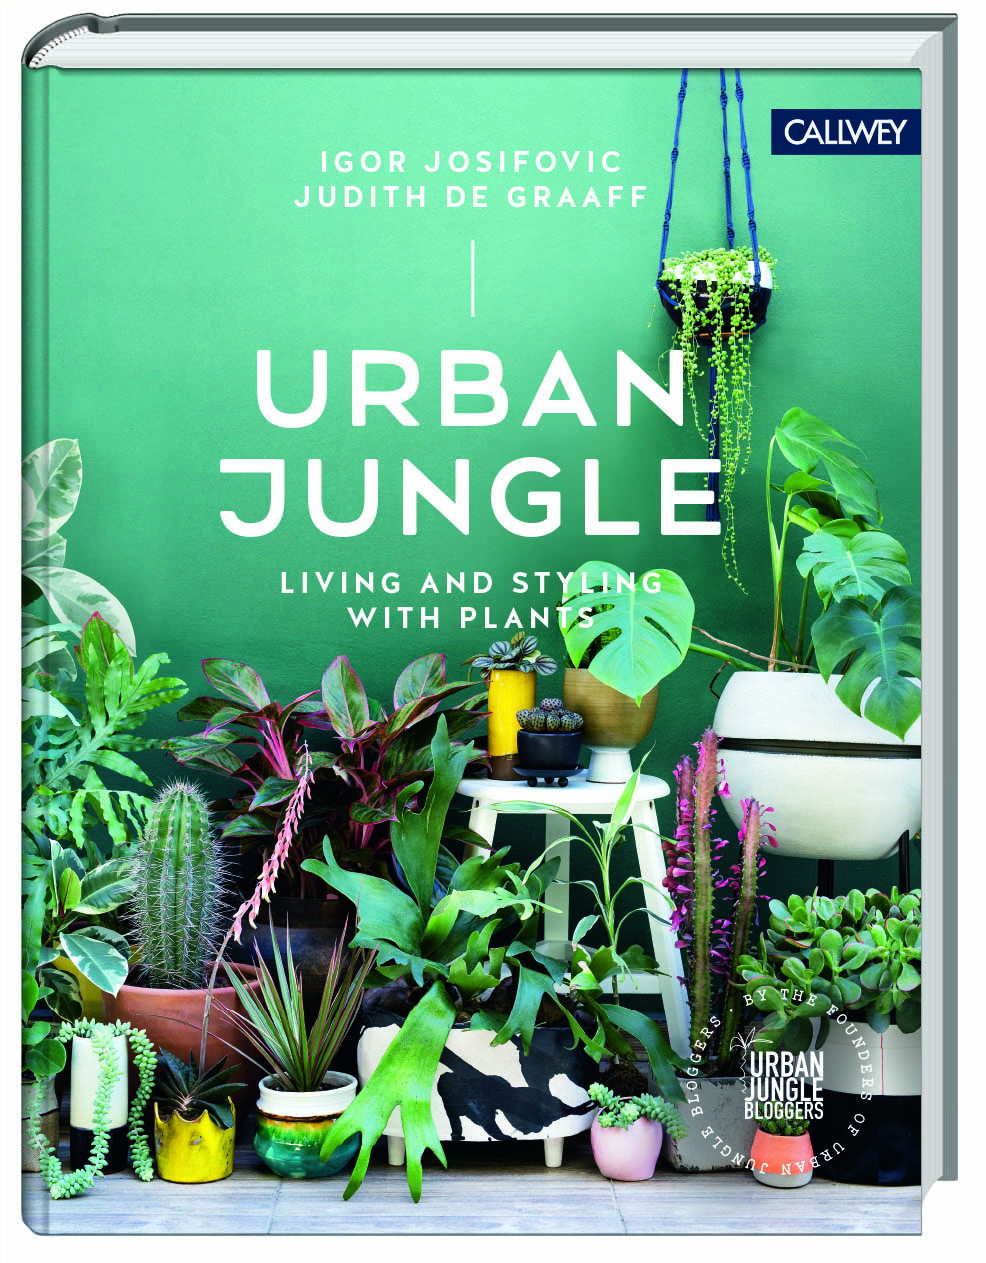 josifovic_degraaff_urban-jungle-green-books-interior-decorating